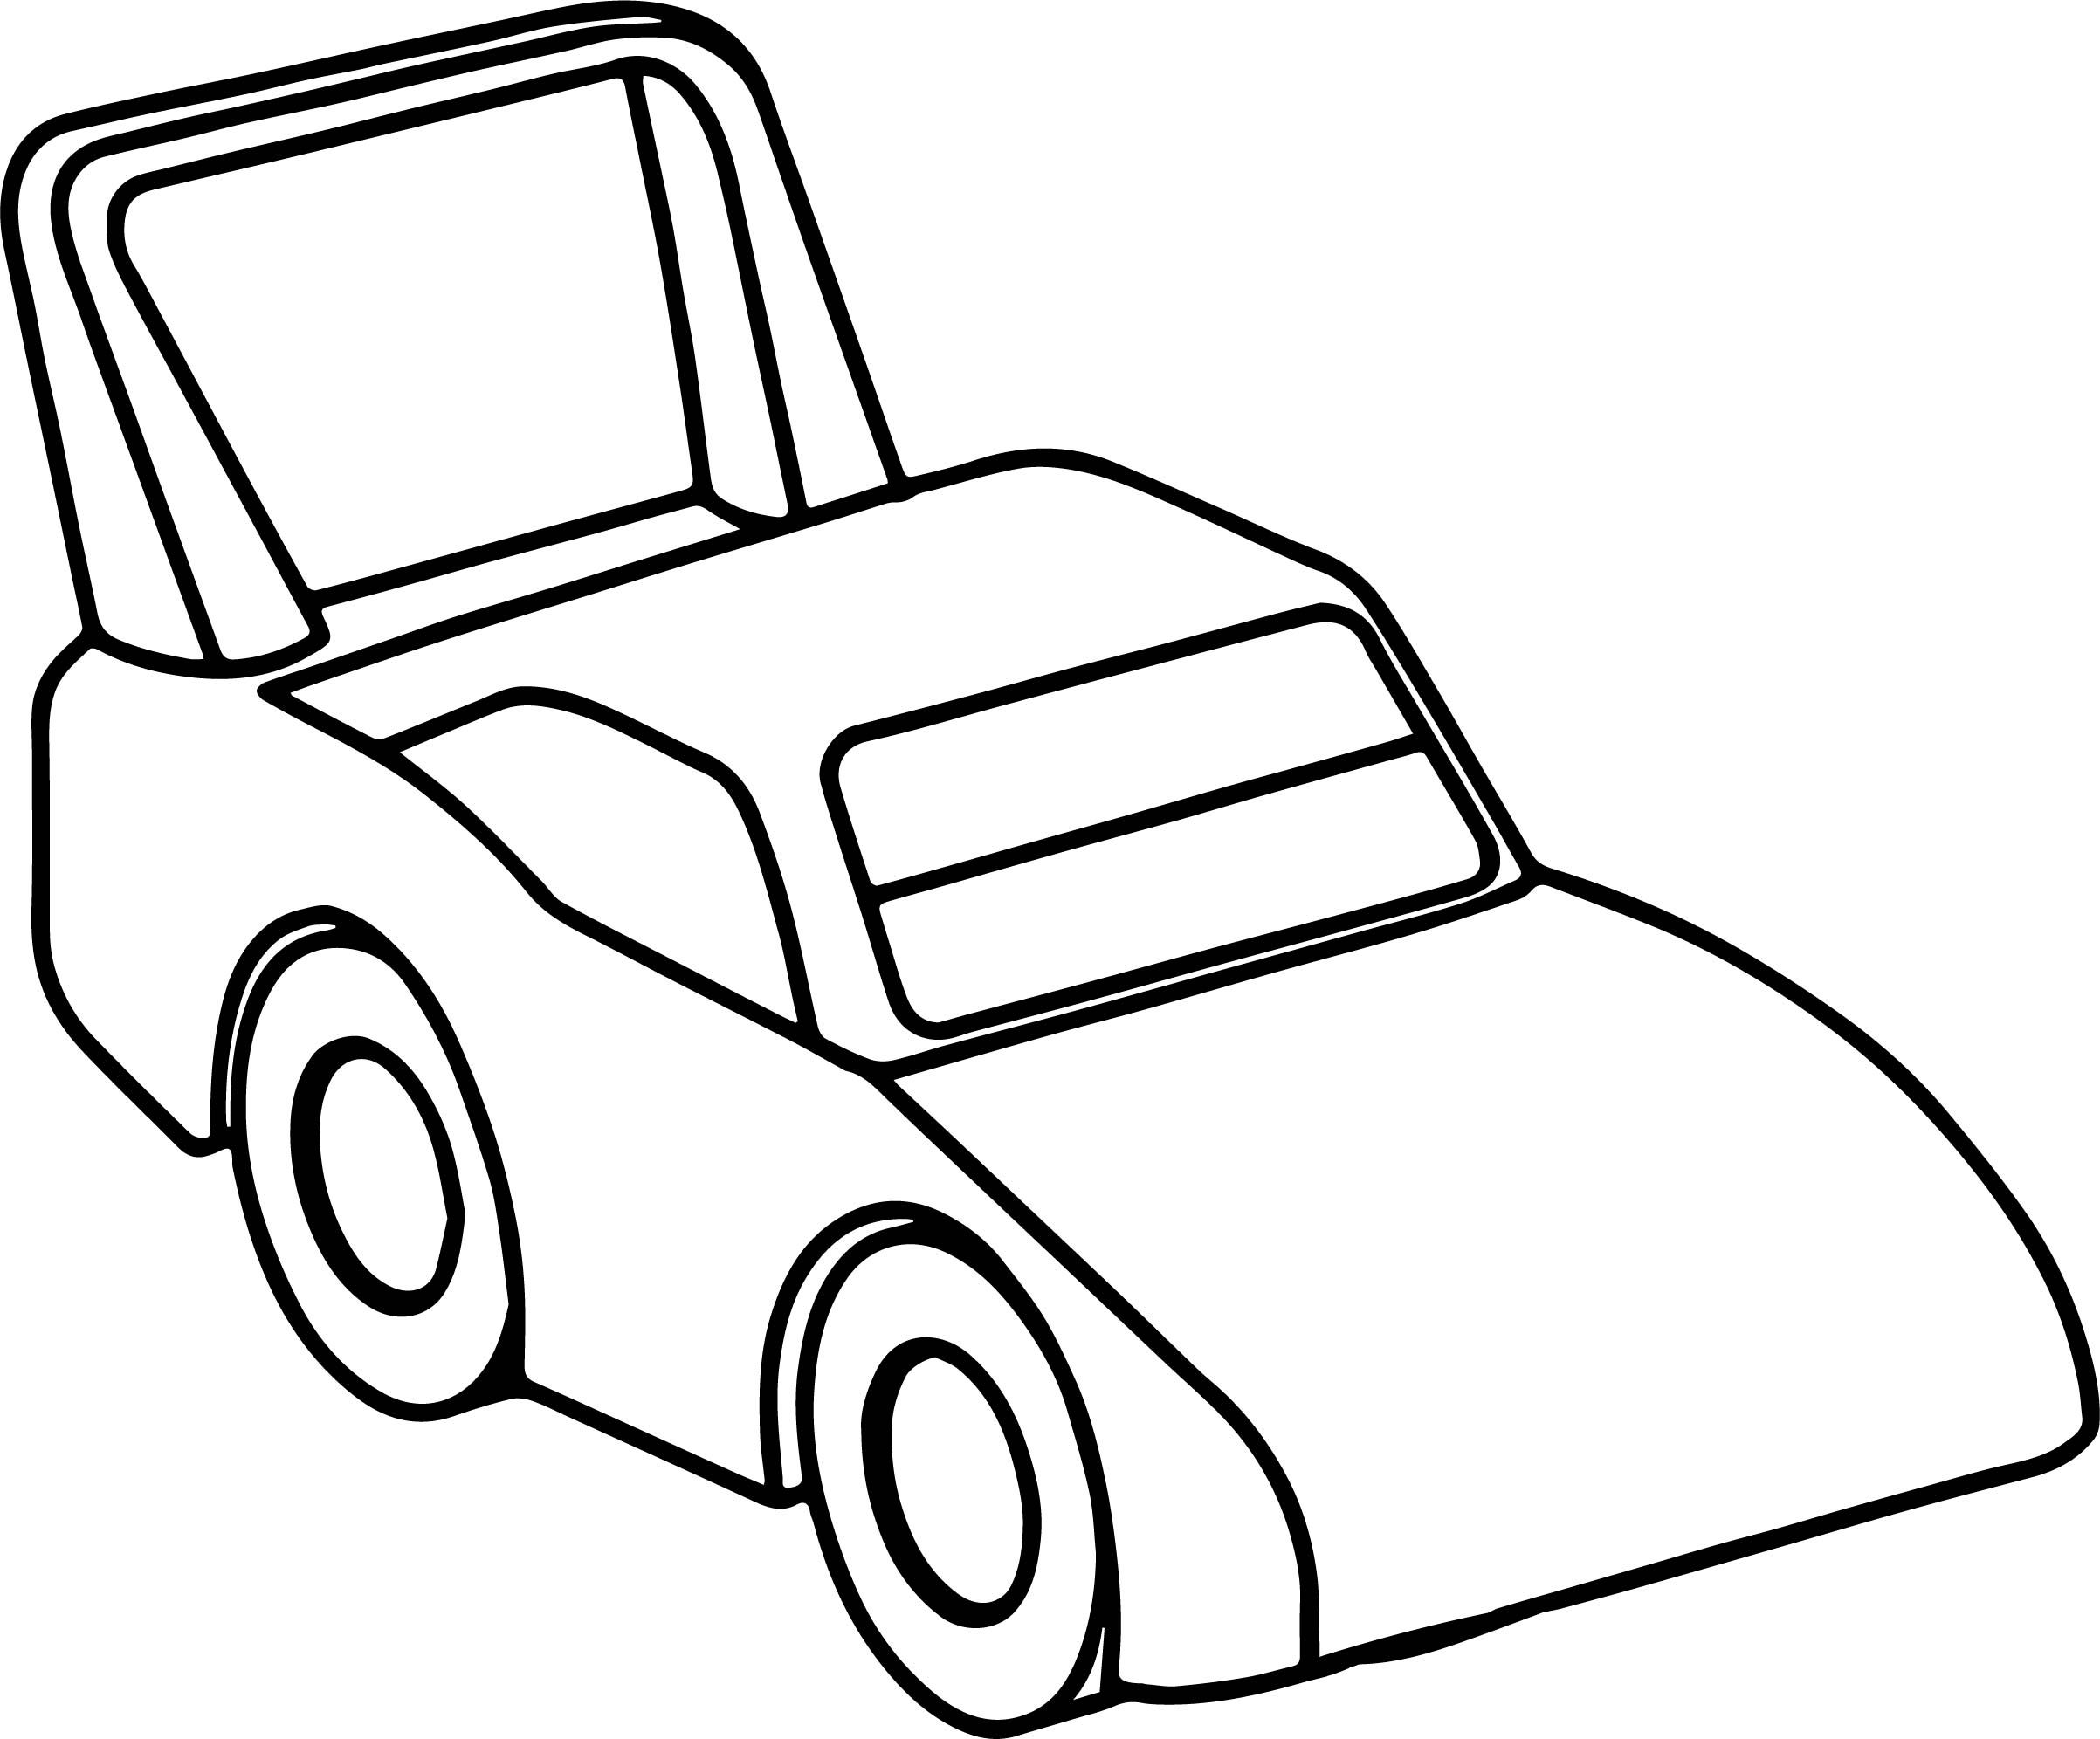 coloring toy car toy car family holiday coloring page wecoloringpagecom car coloring toy